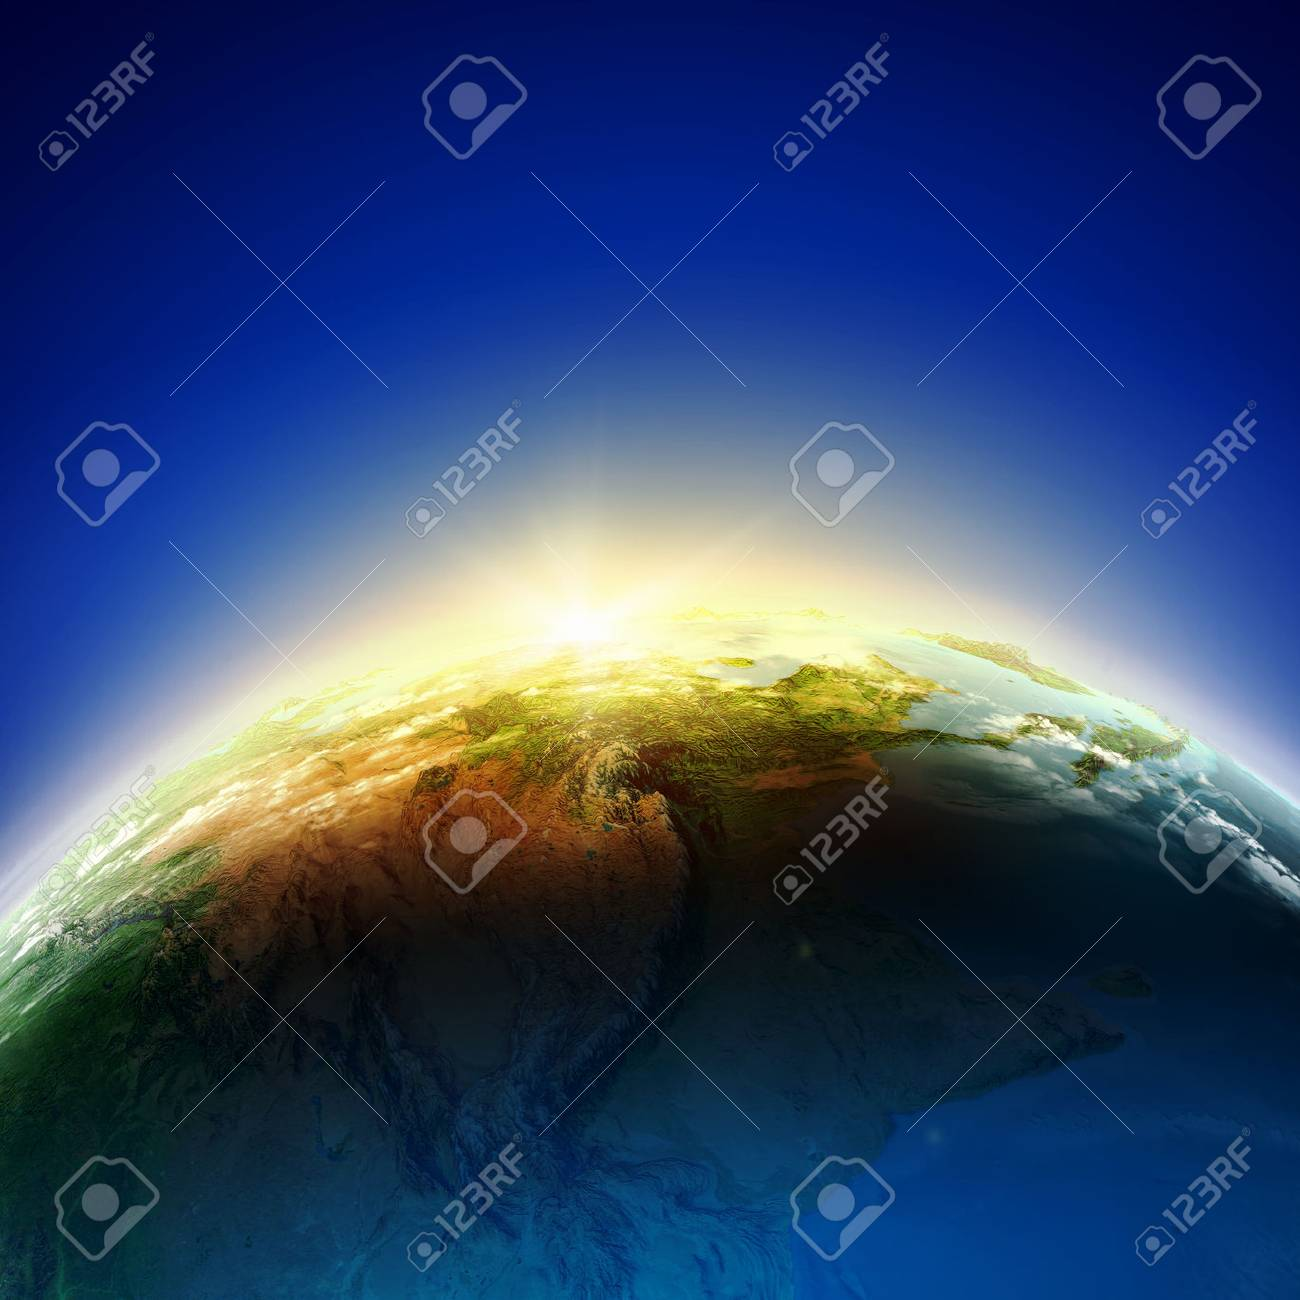 Sun rising above Earth planet  Conceptual photo Stock Photo - 24949356